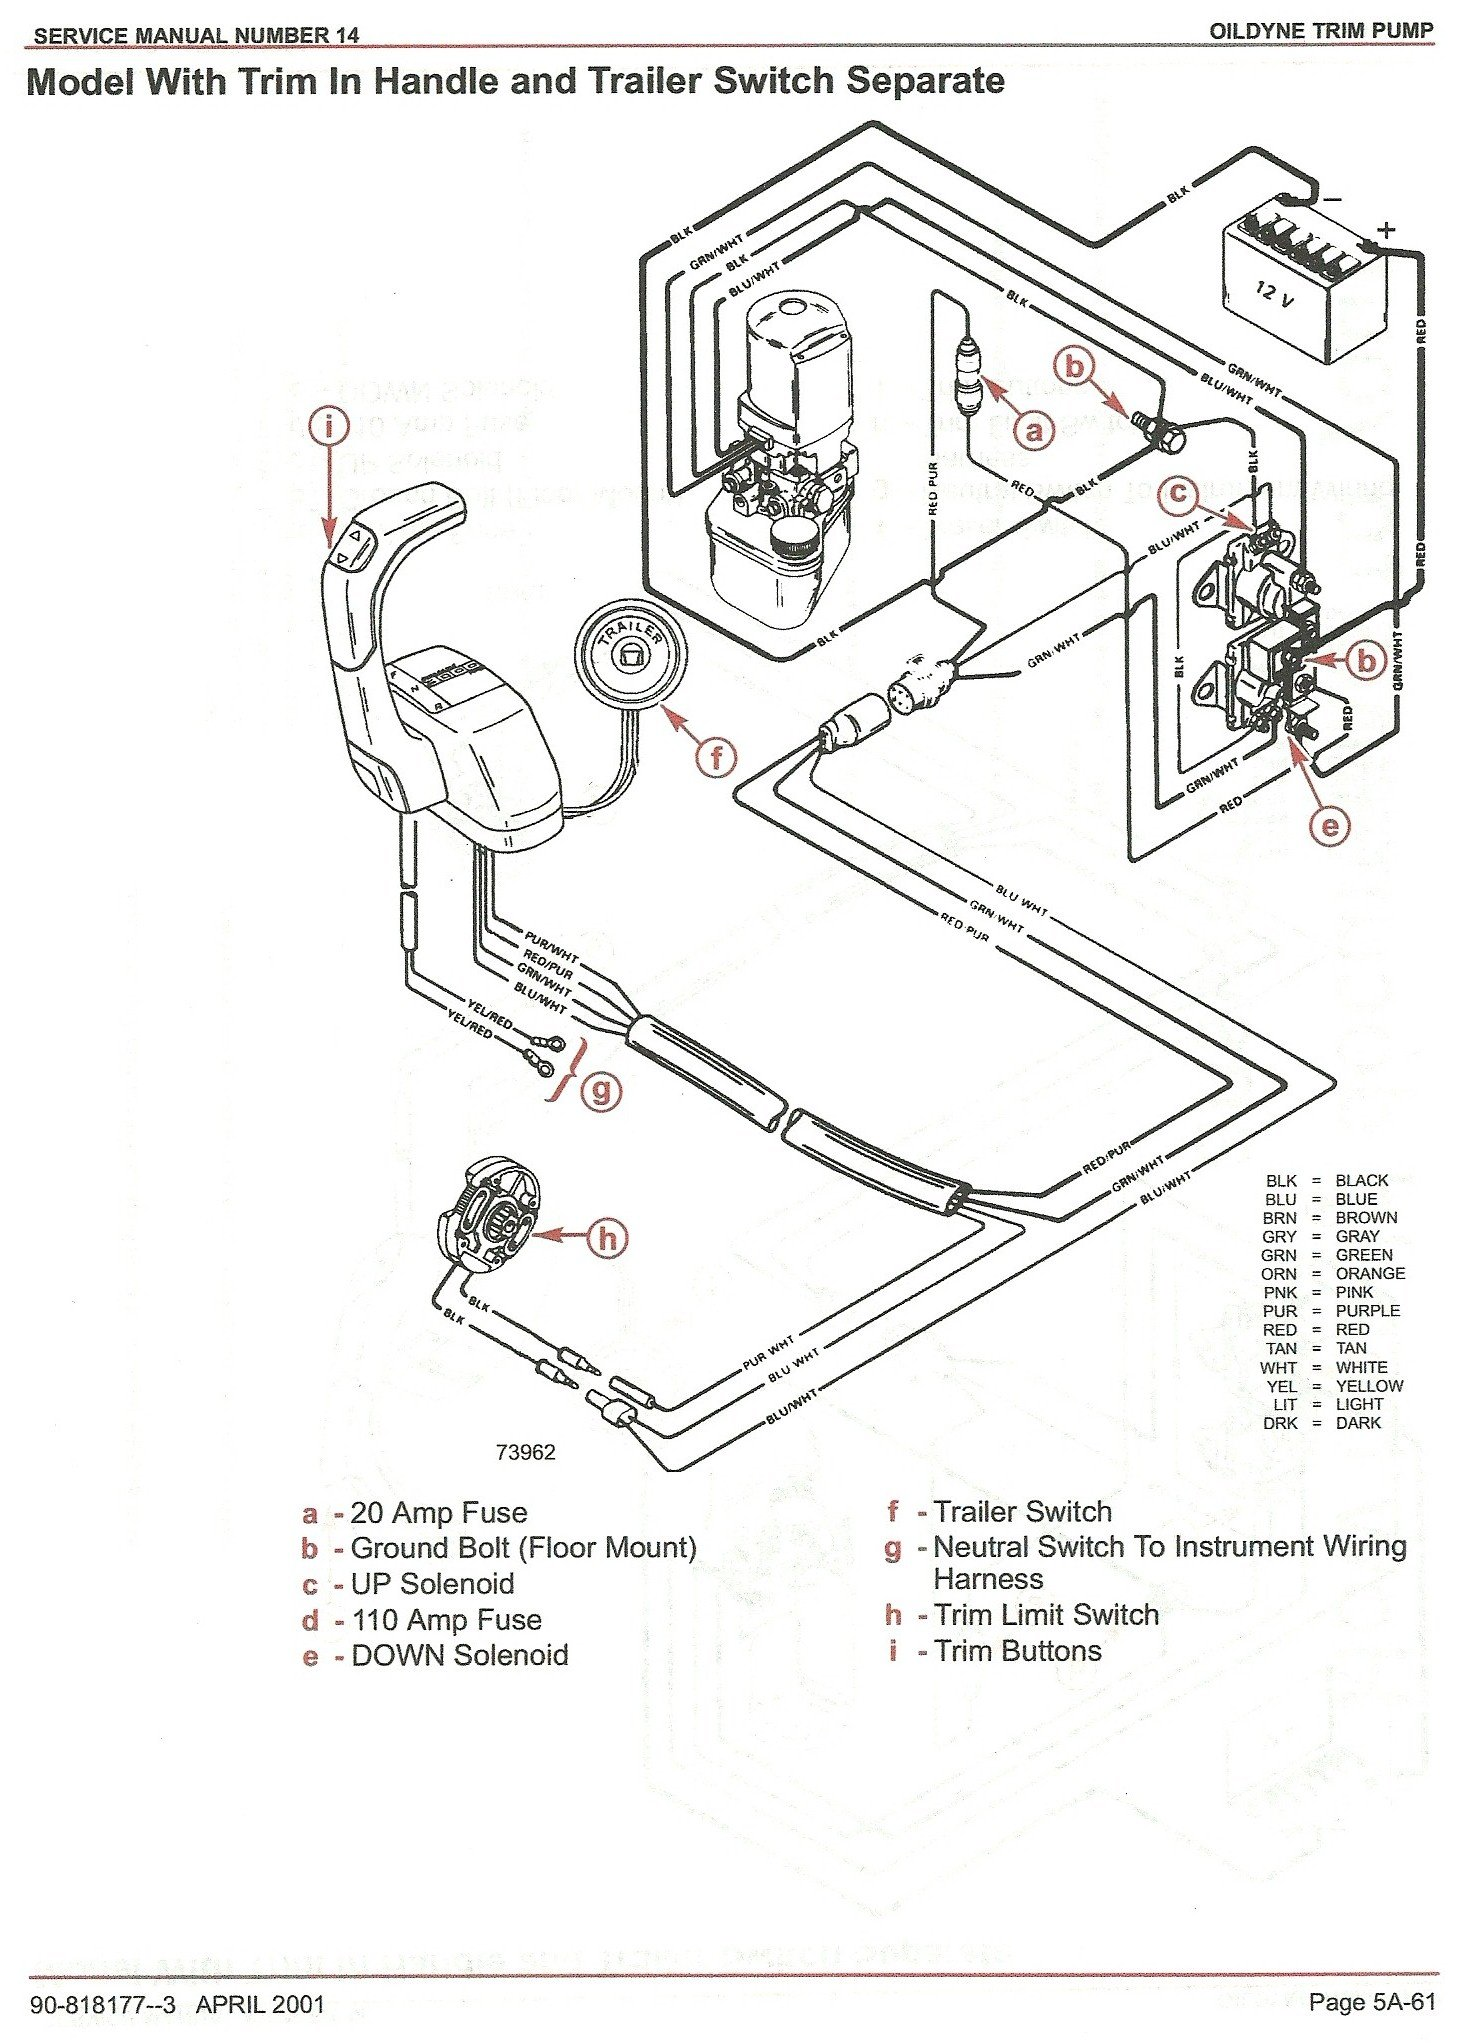 2010 06 19_135902_T N T_wiring_diagram i have a 1988 sea ray sorento with mercruiser stern drive the  at bayanpartner.co